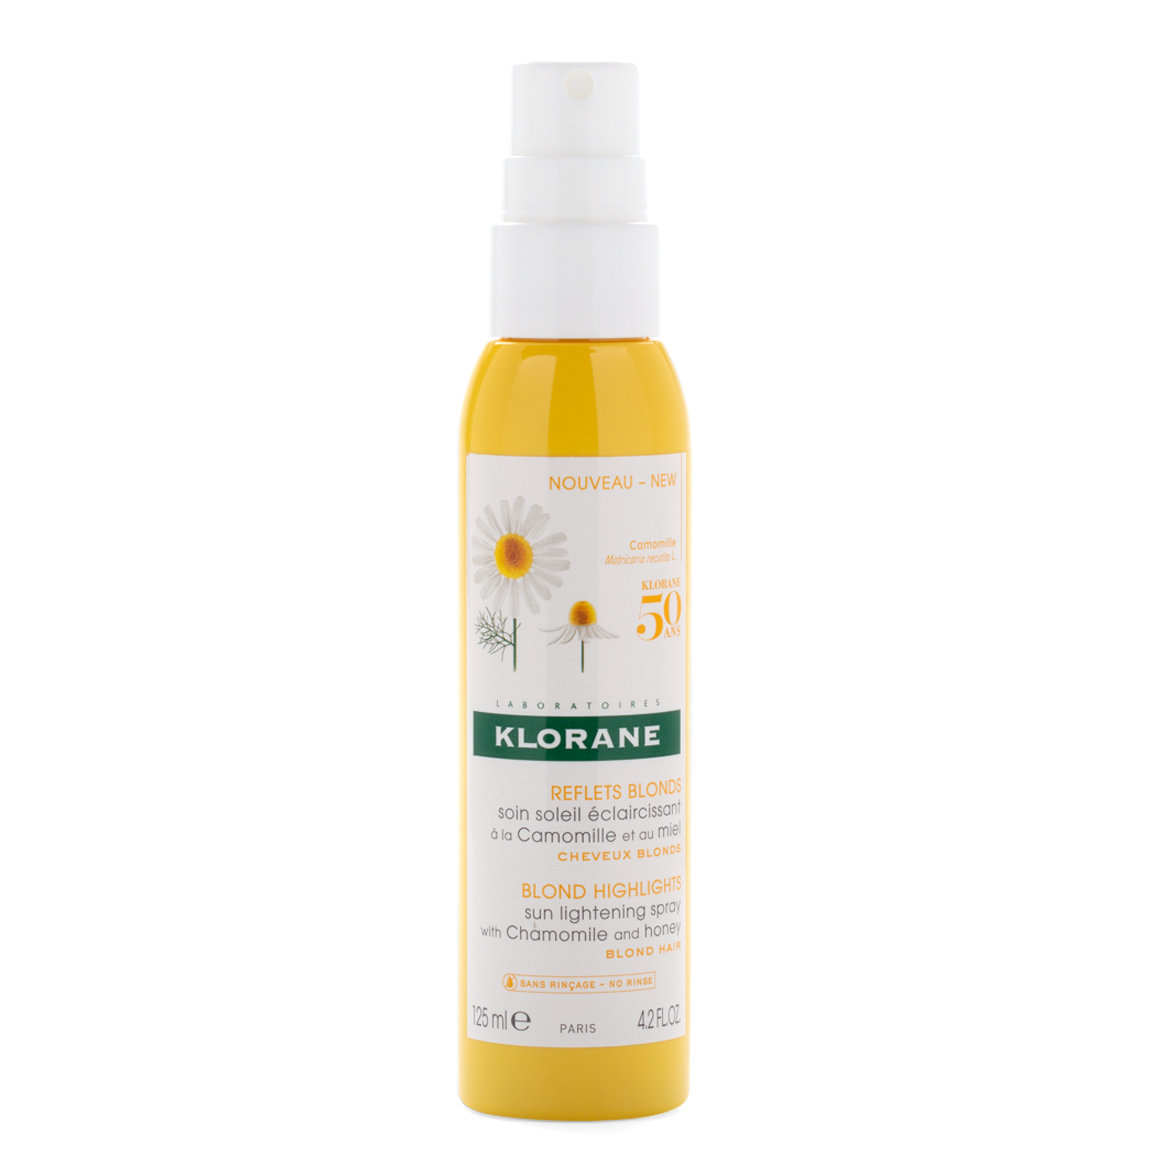 Klorane Sun Lightening Spray with Chamomile and Honey